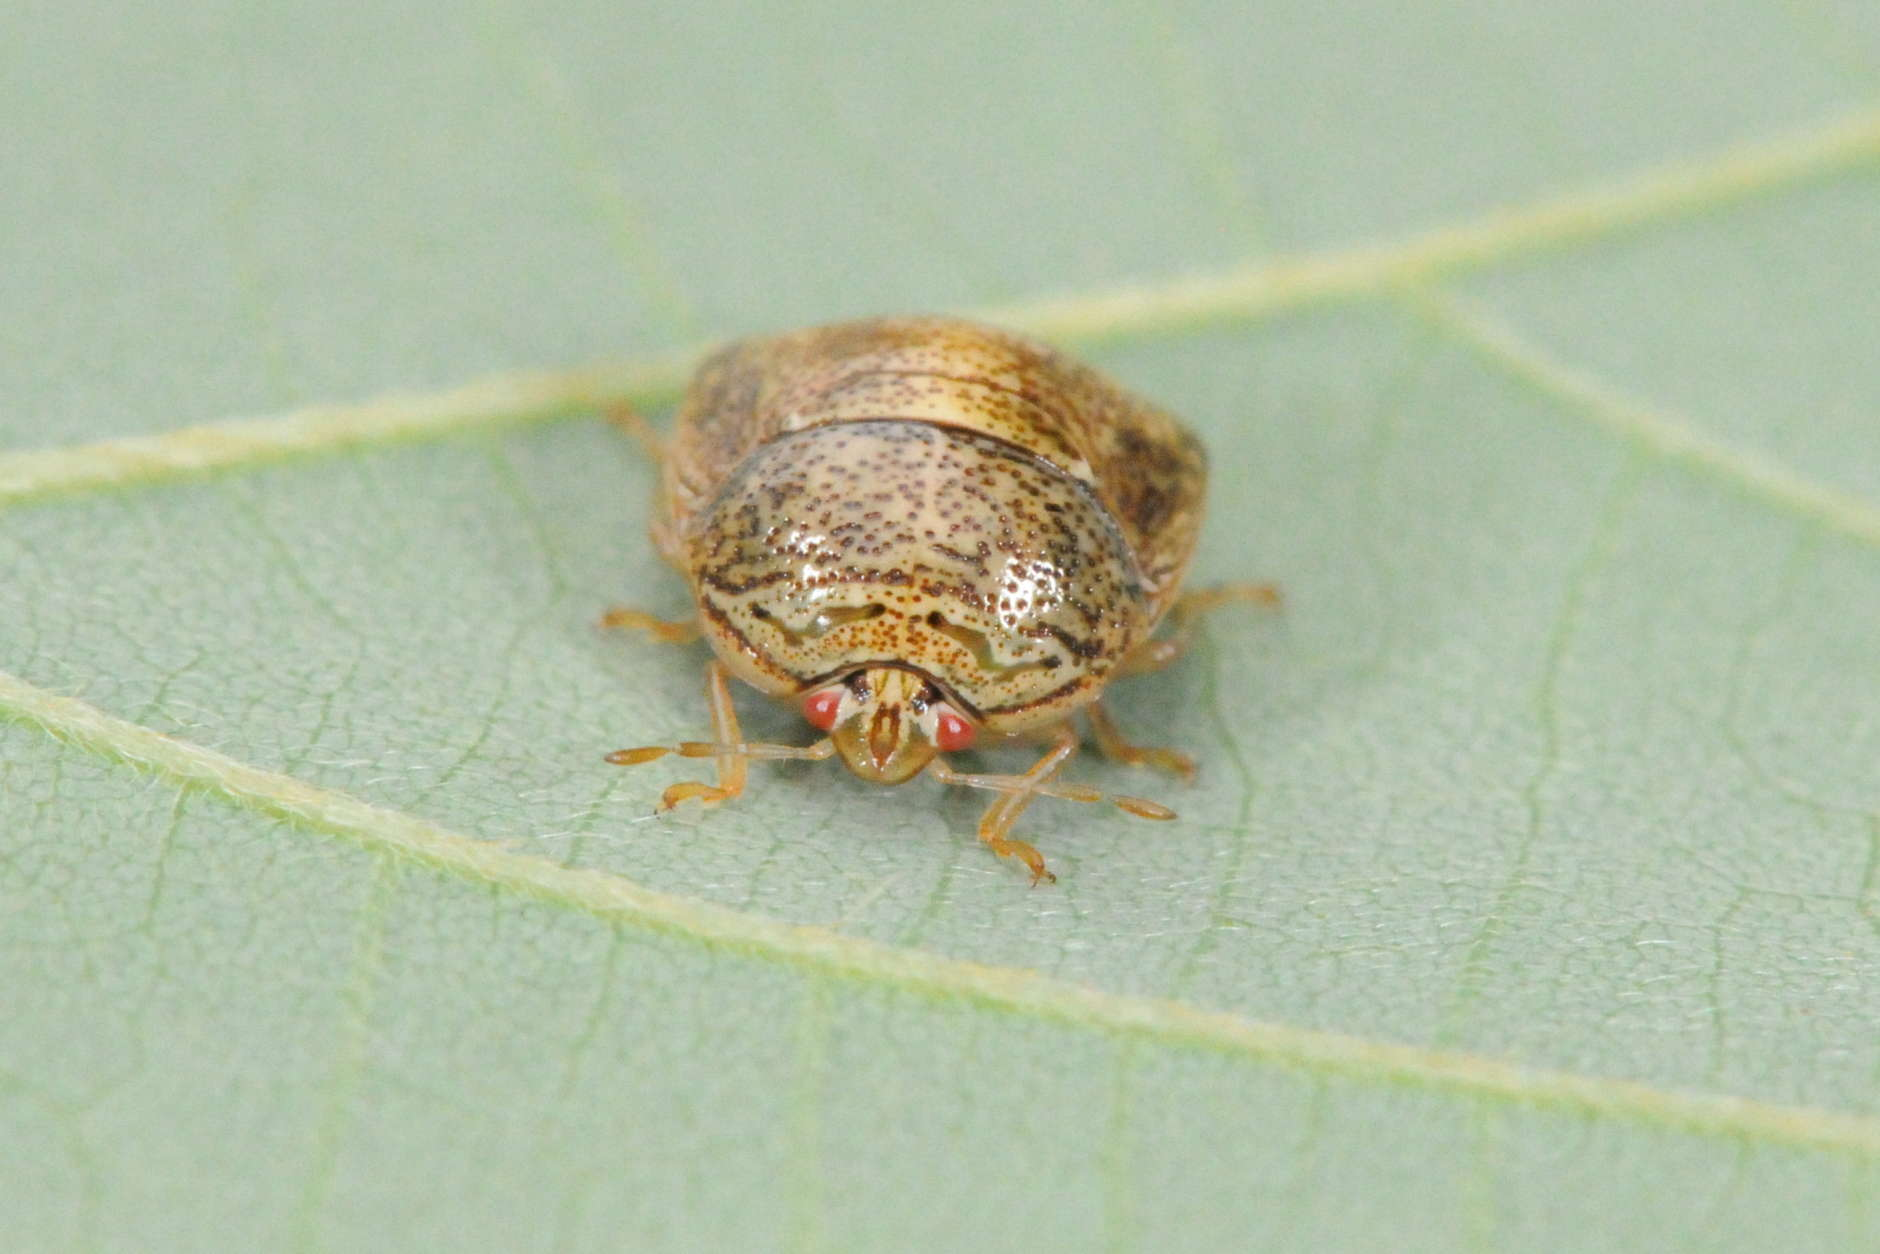 The kudzu bug is a soybean pest that survives well in Maryland when winters are mild. (Photo courtesy Mike Raupp)